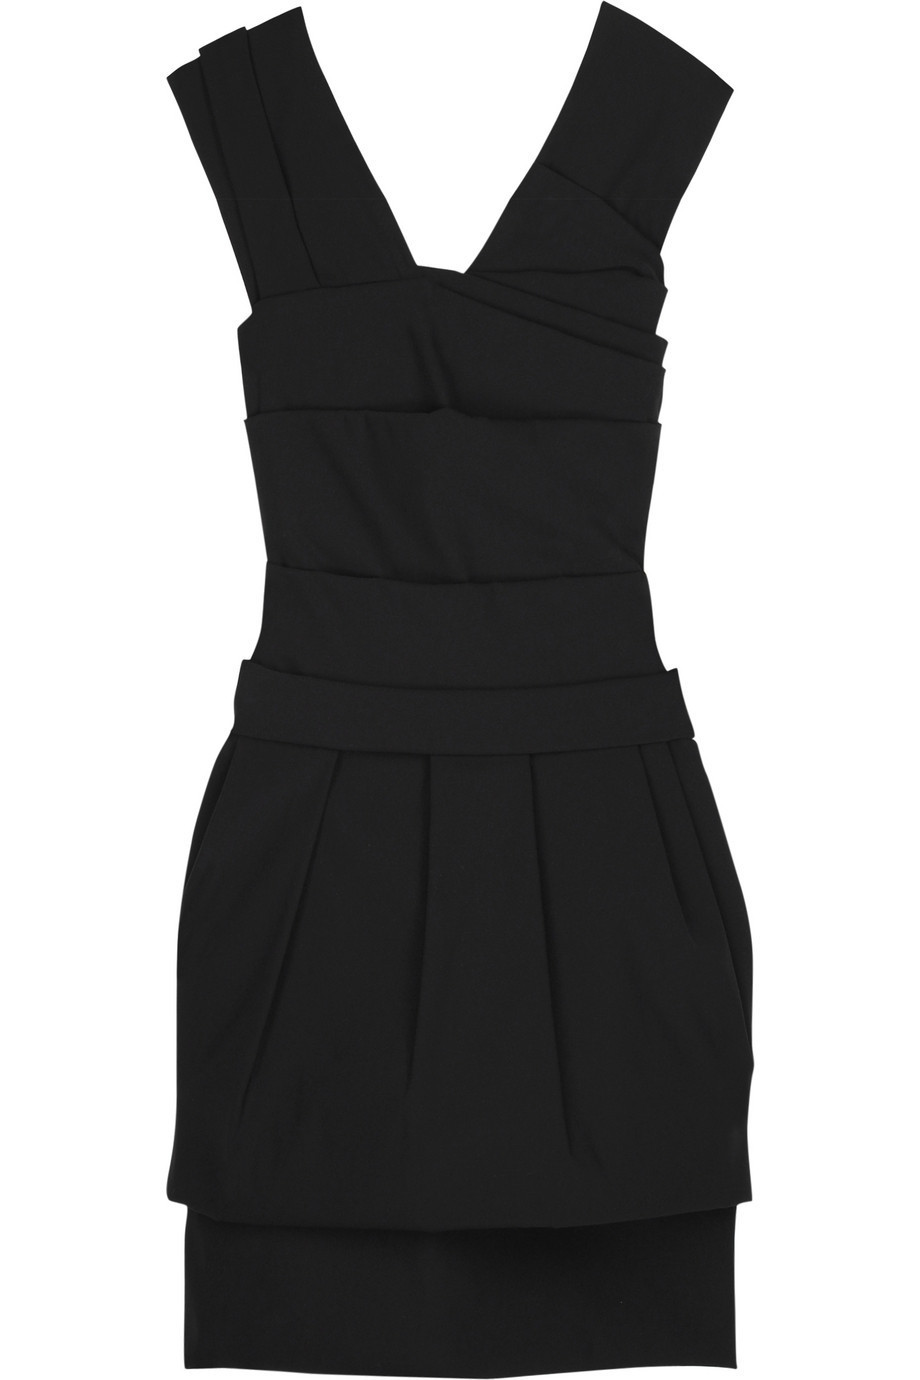 Preen Power bandage dress | NET-A-PORTER.COM from net-a-porter.com